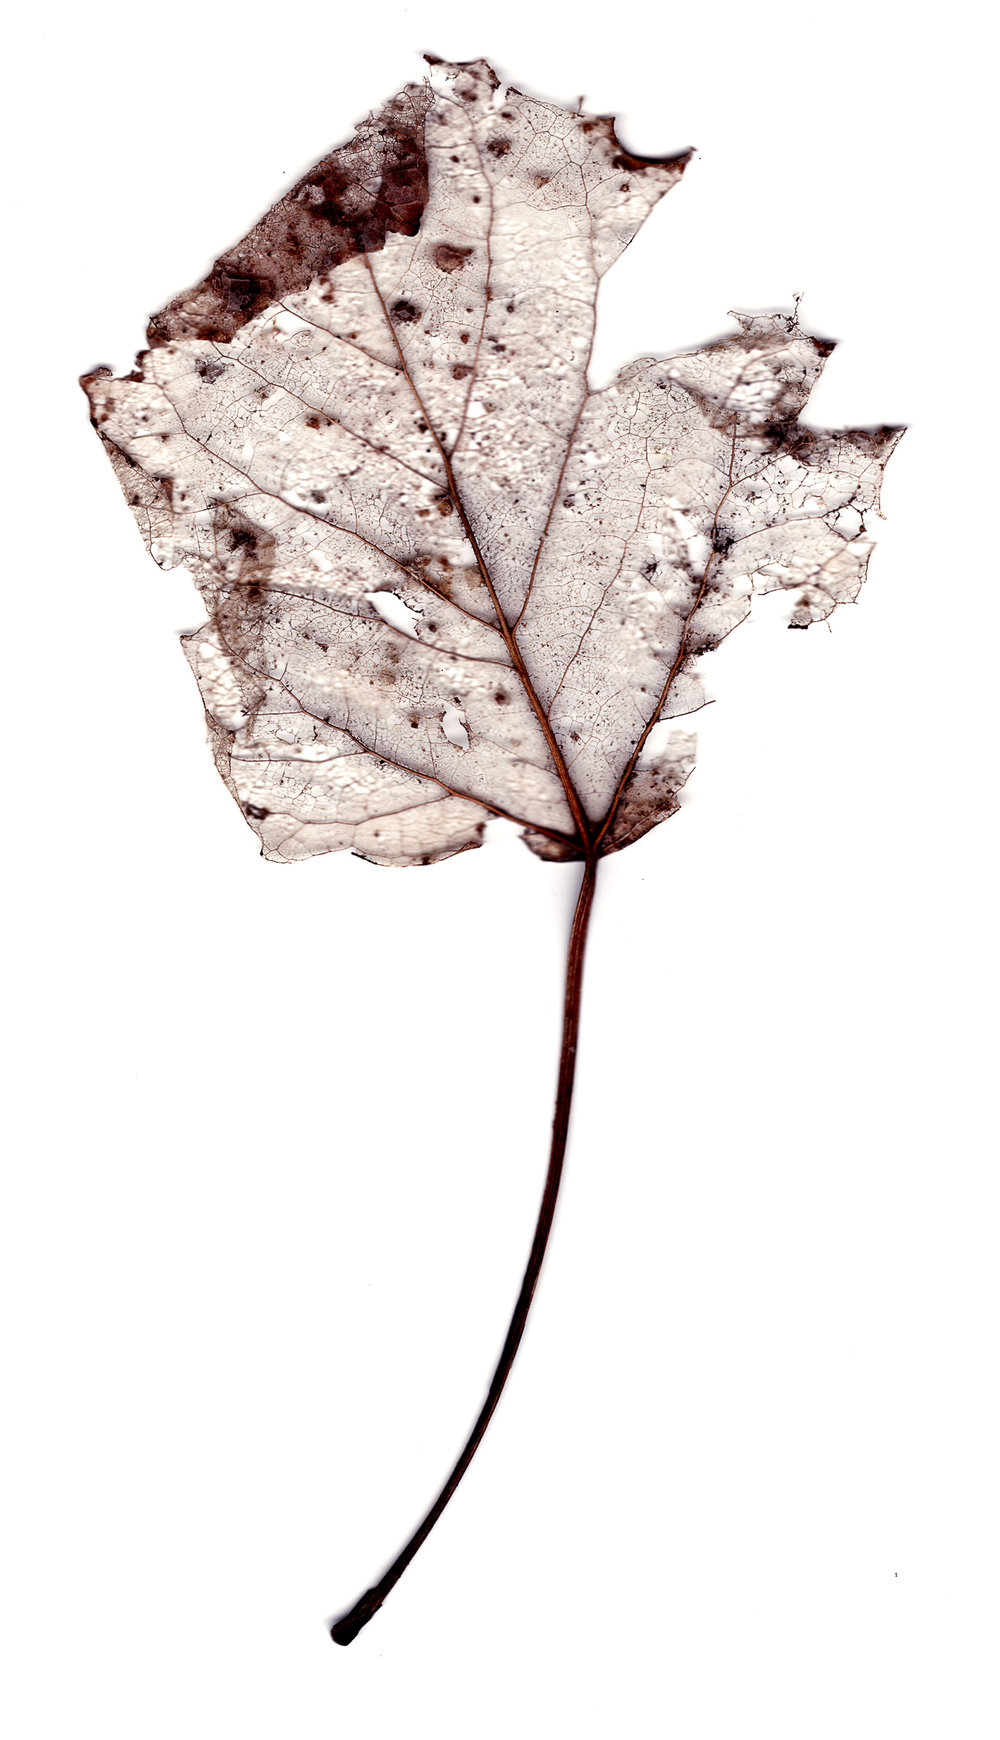 Collected Poems, Aspen Leaves0001  , Ink Jet print on Washi paper, 13x27 inches, 2007, ed. 3